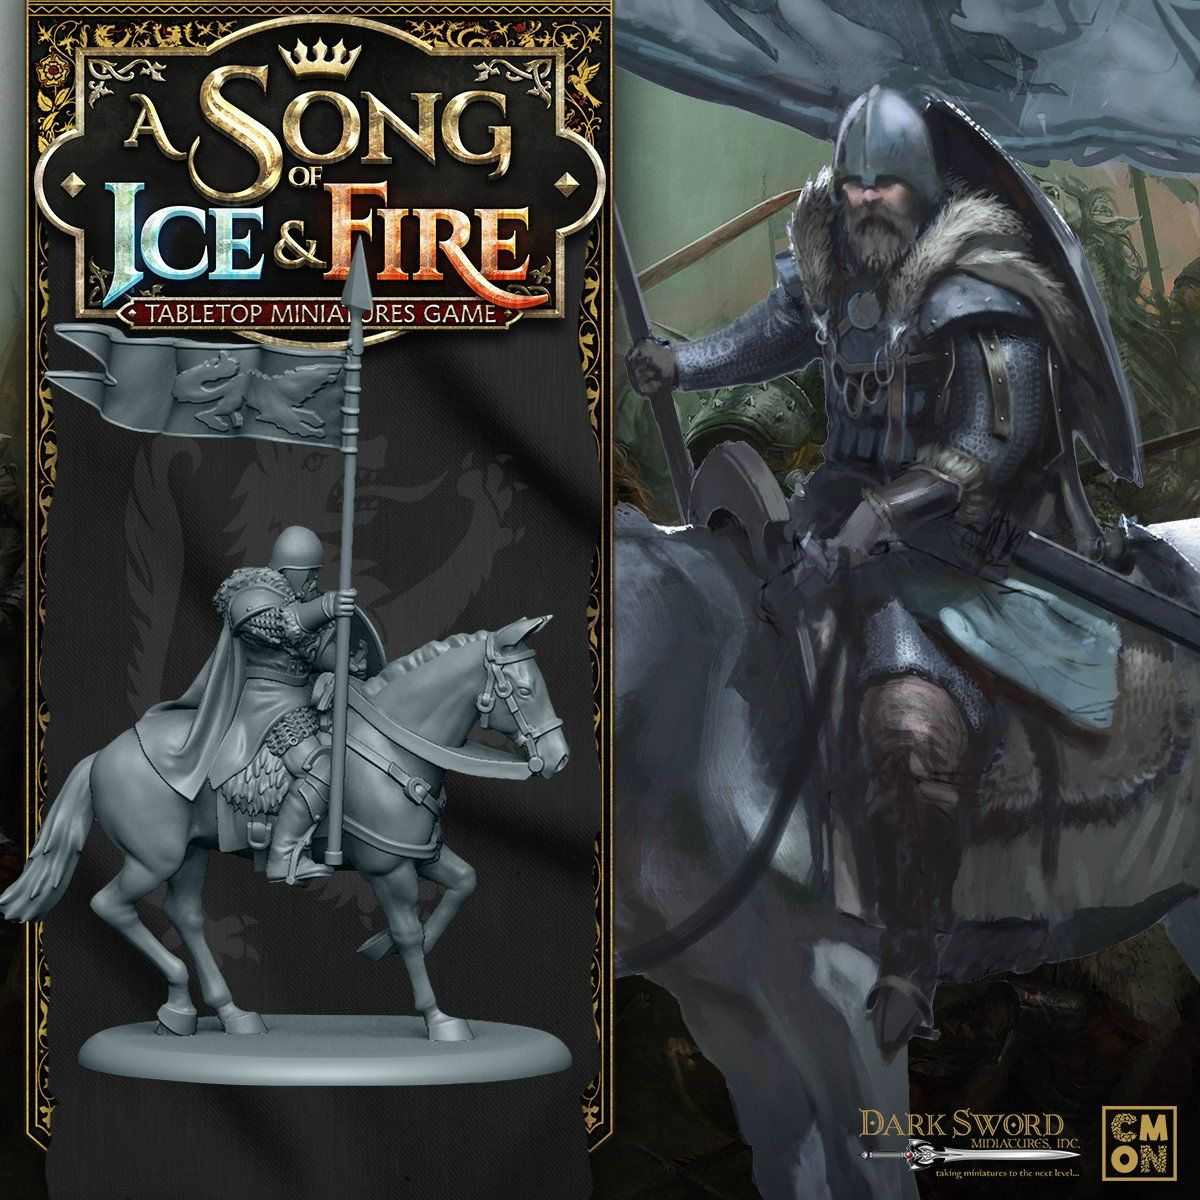 Cmon On With Images A Song Of Ice And Fire Miniature Games